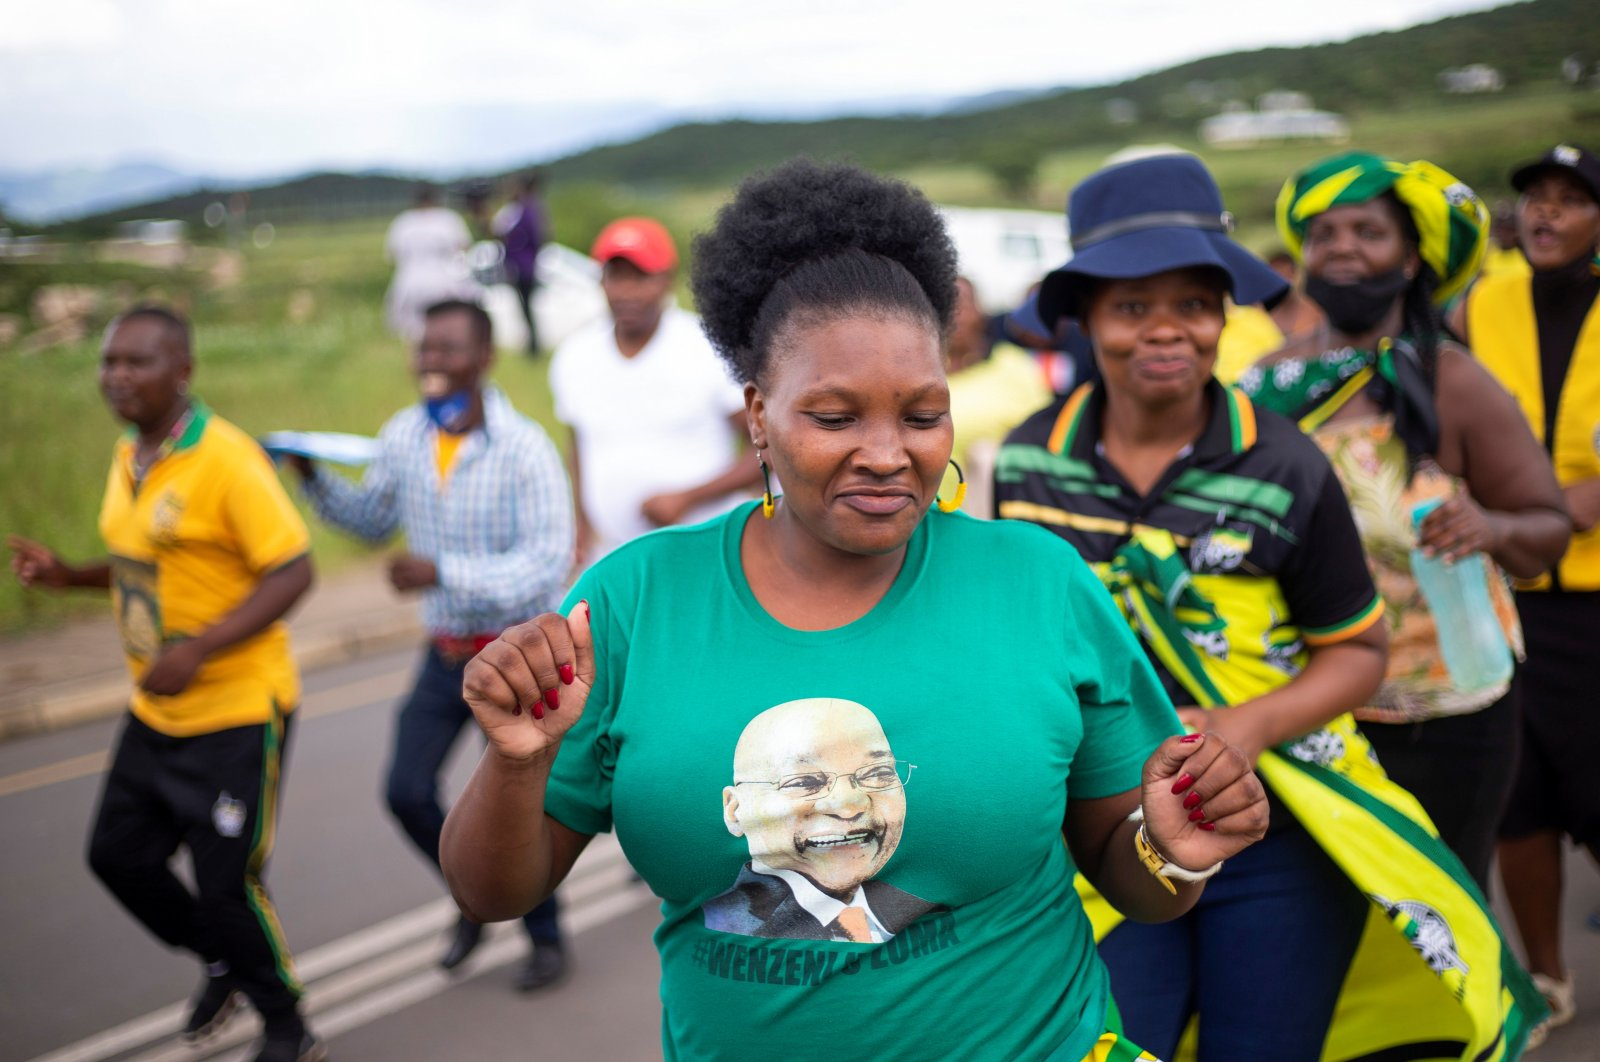 Supporters of South Africa's former President Jacob Zuma parade in front of his house, in Nkandla, South Africa, Feb. 15, 2021. (Reuters Photo)